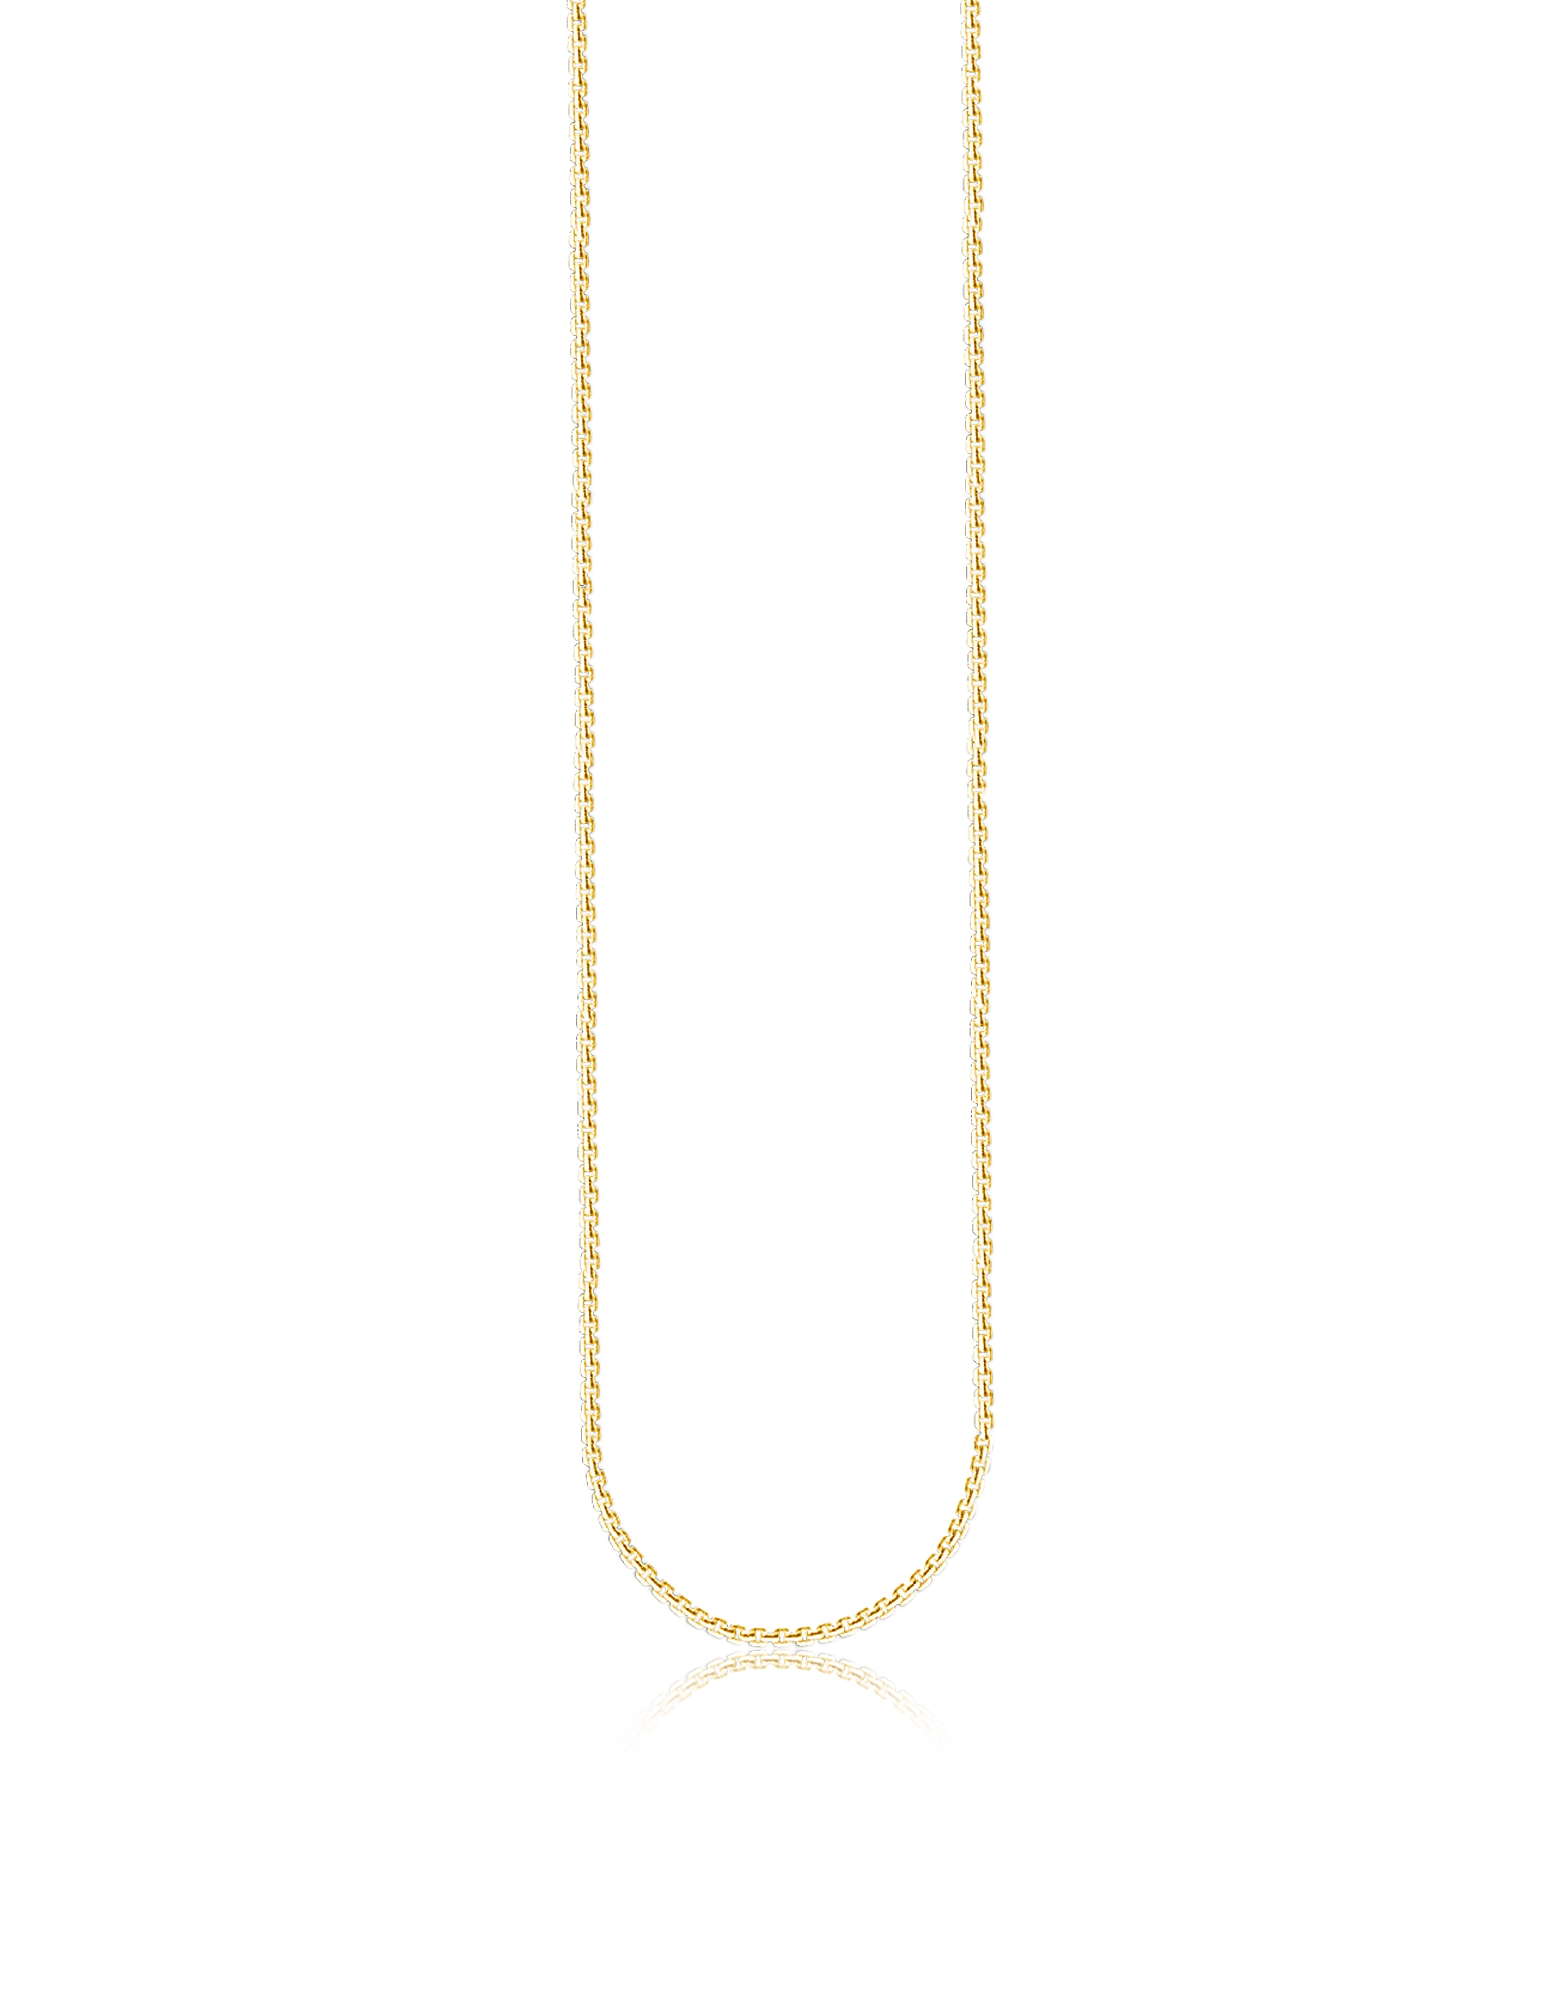 Gold Plated Sterling Silver Venezia Chain Necklace